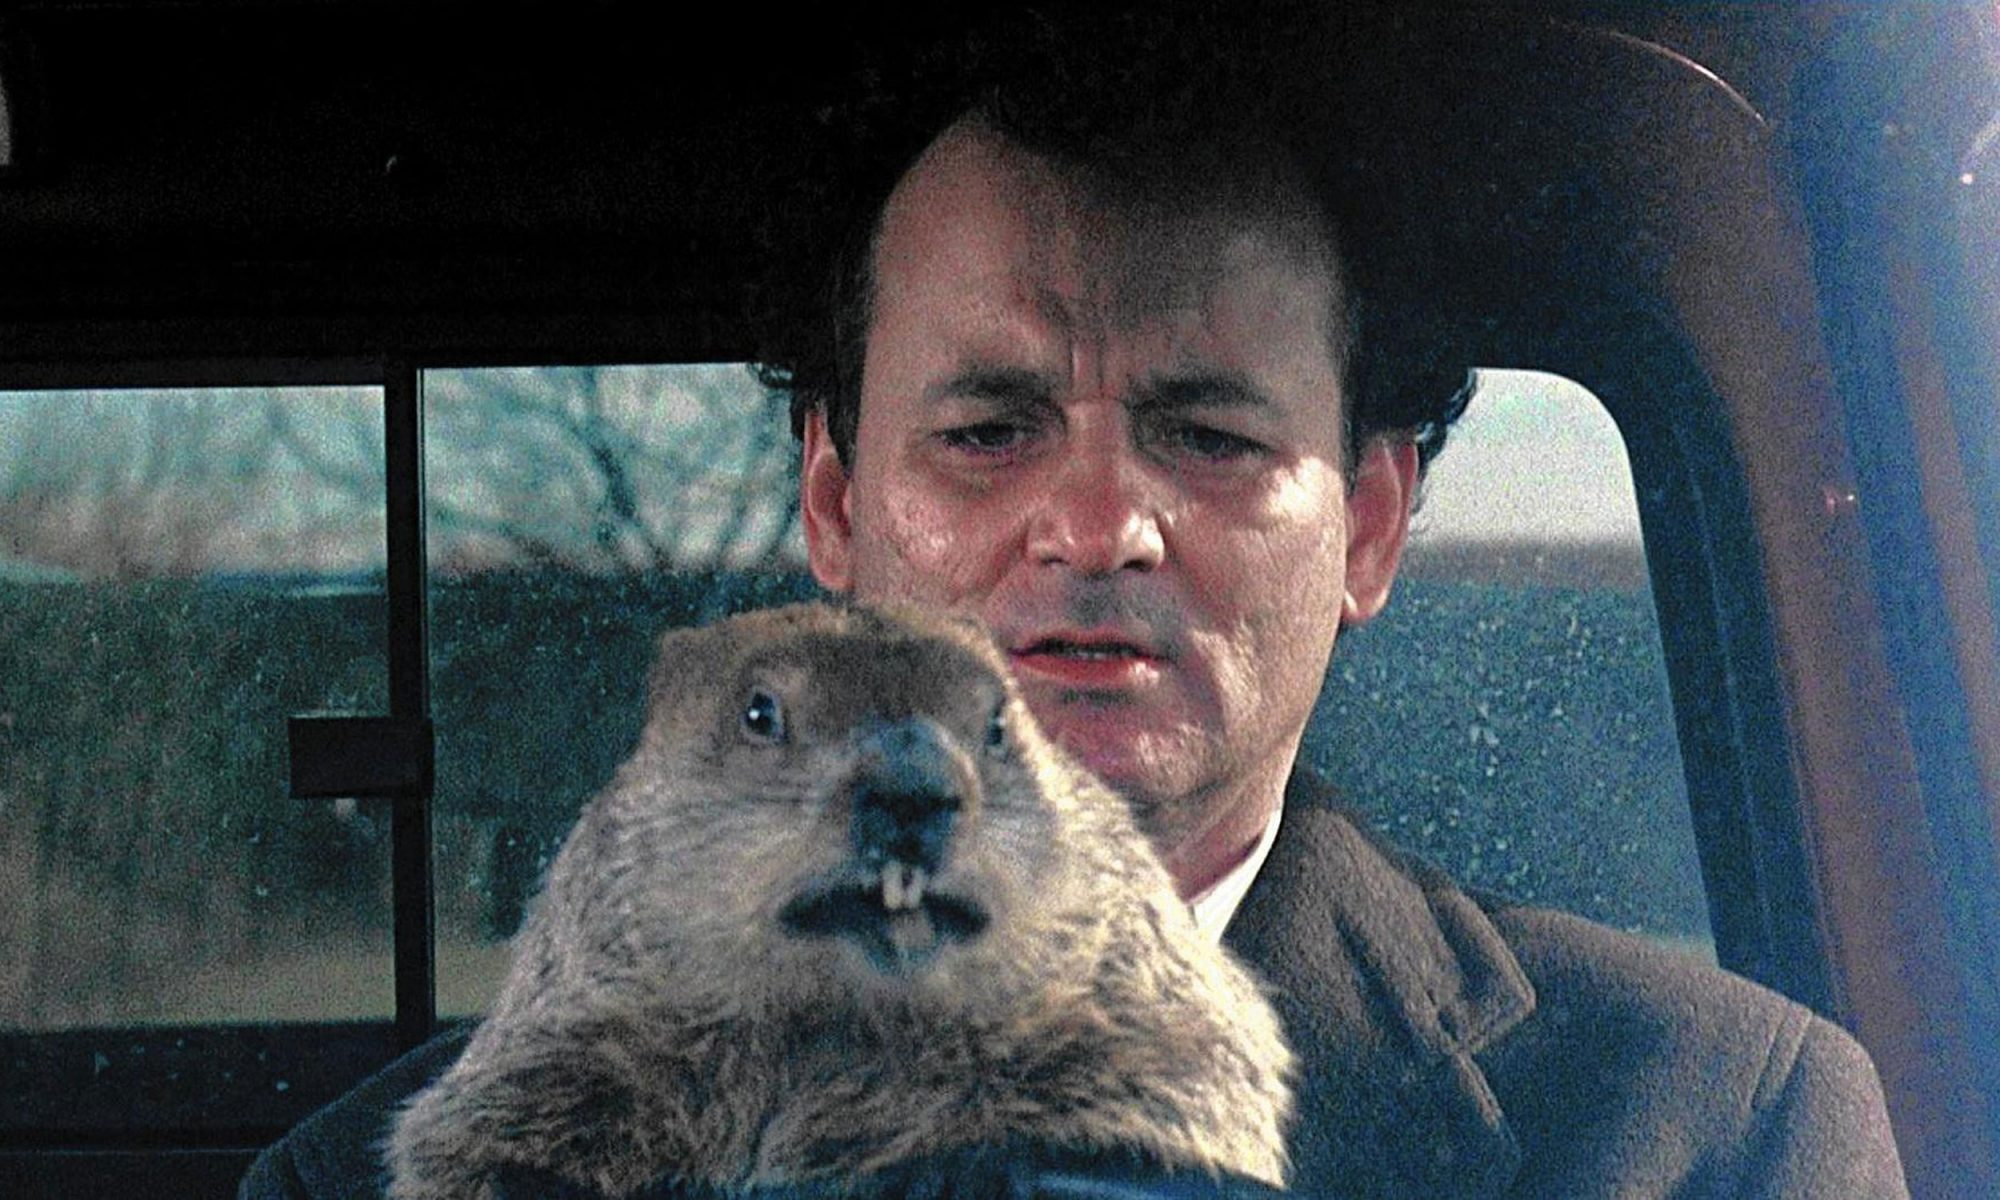 EC: Breakfast in 'Groundhog Day' Is Both Heaven and Hell